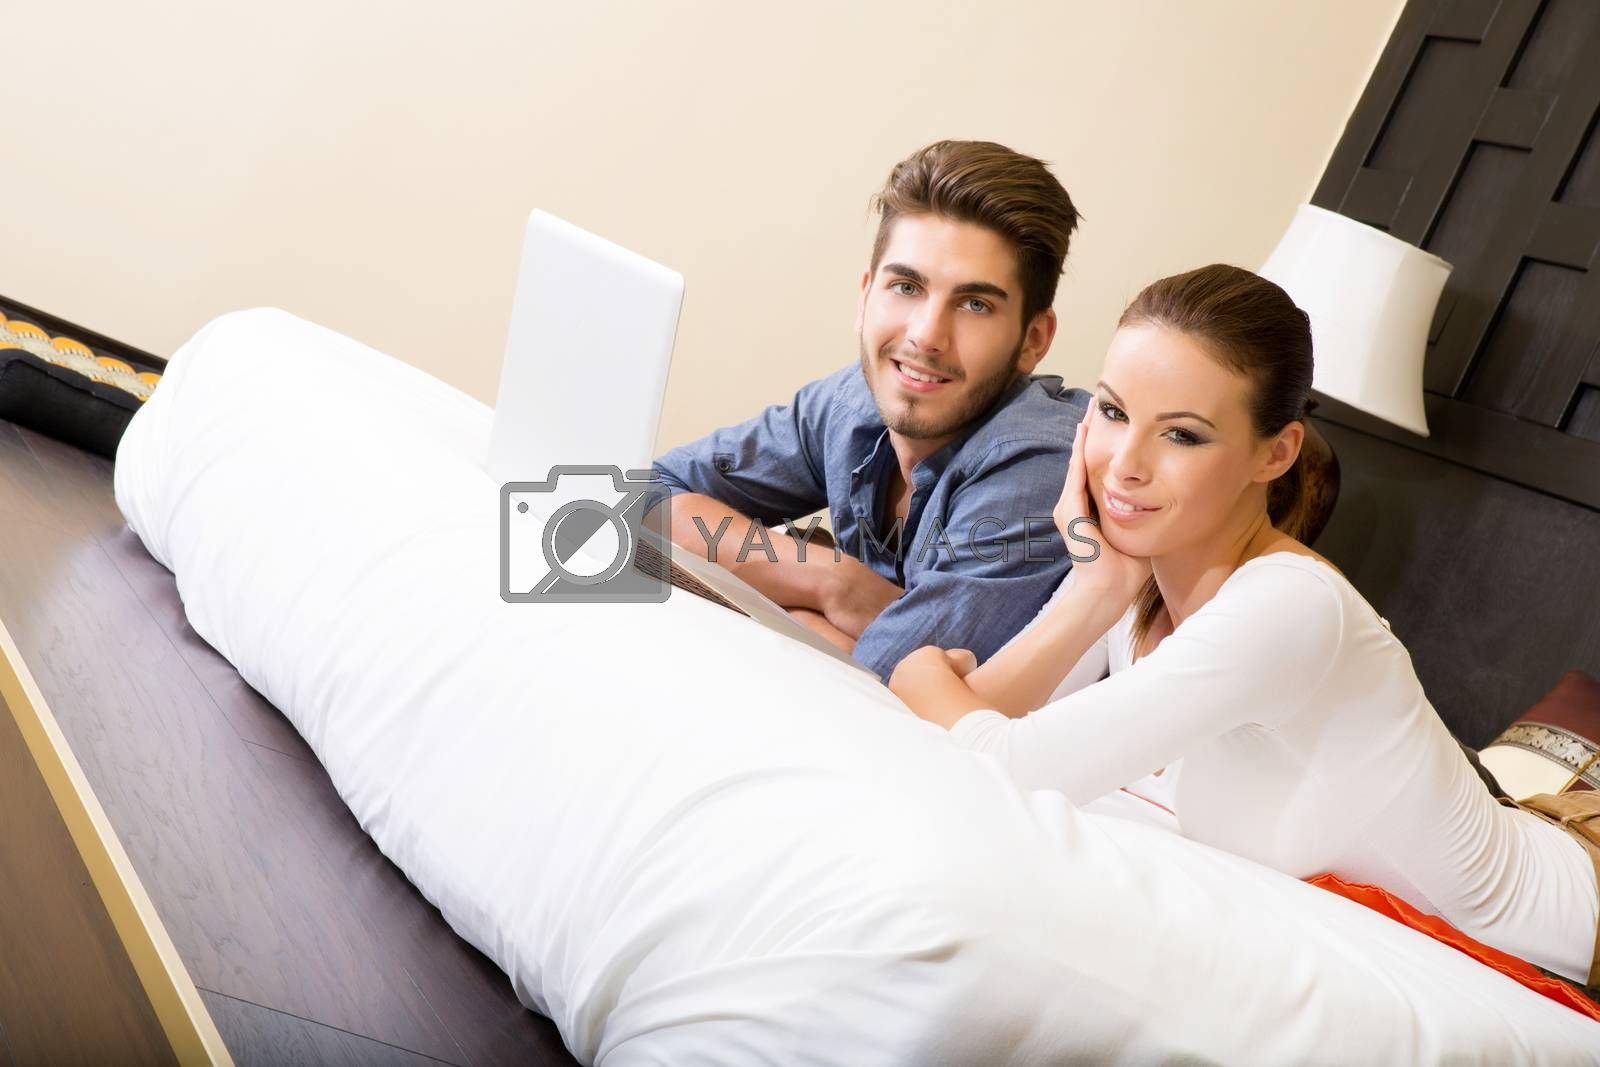 Young couple using a notebook in a asian hotel room while lying on the bed.